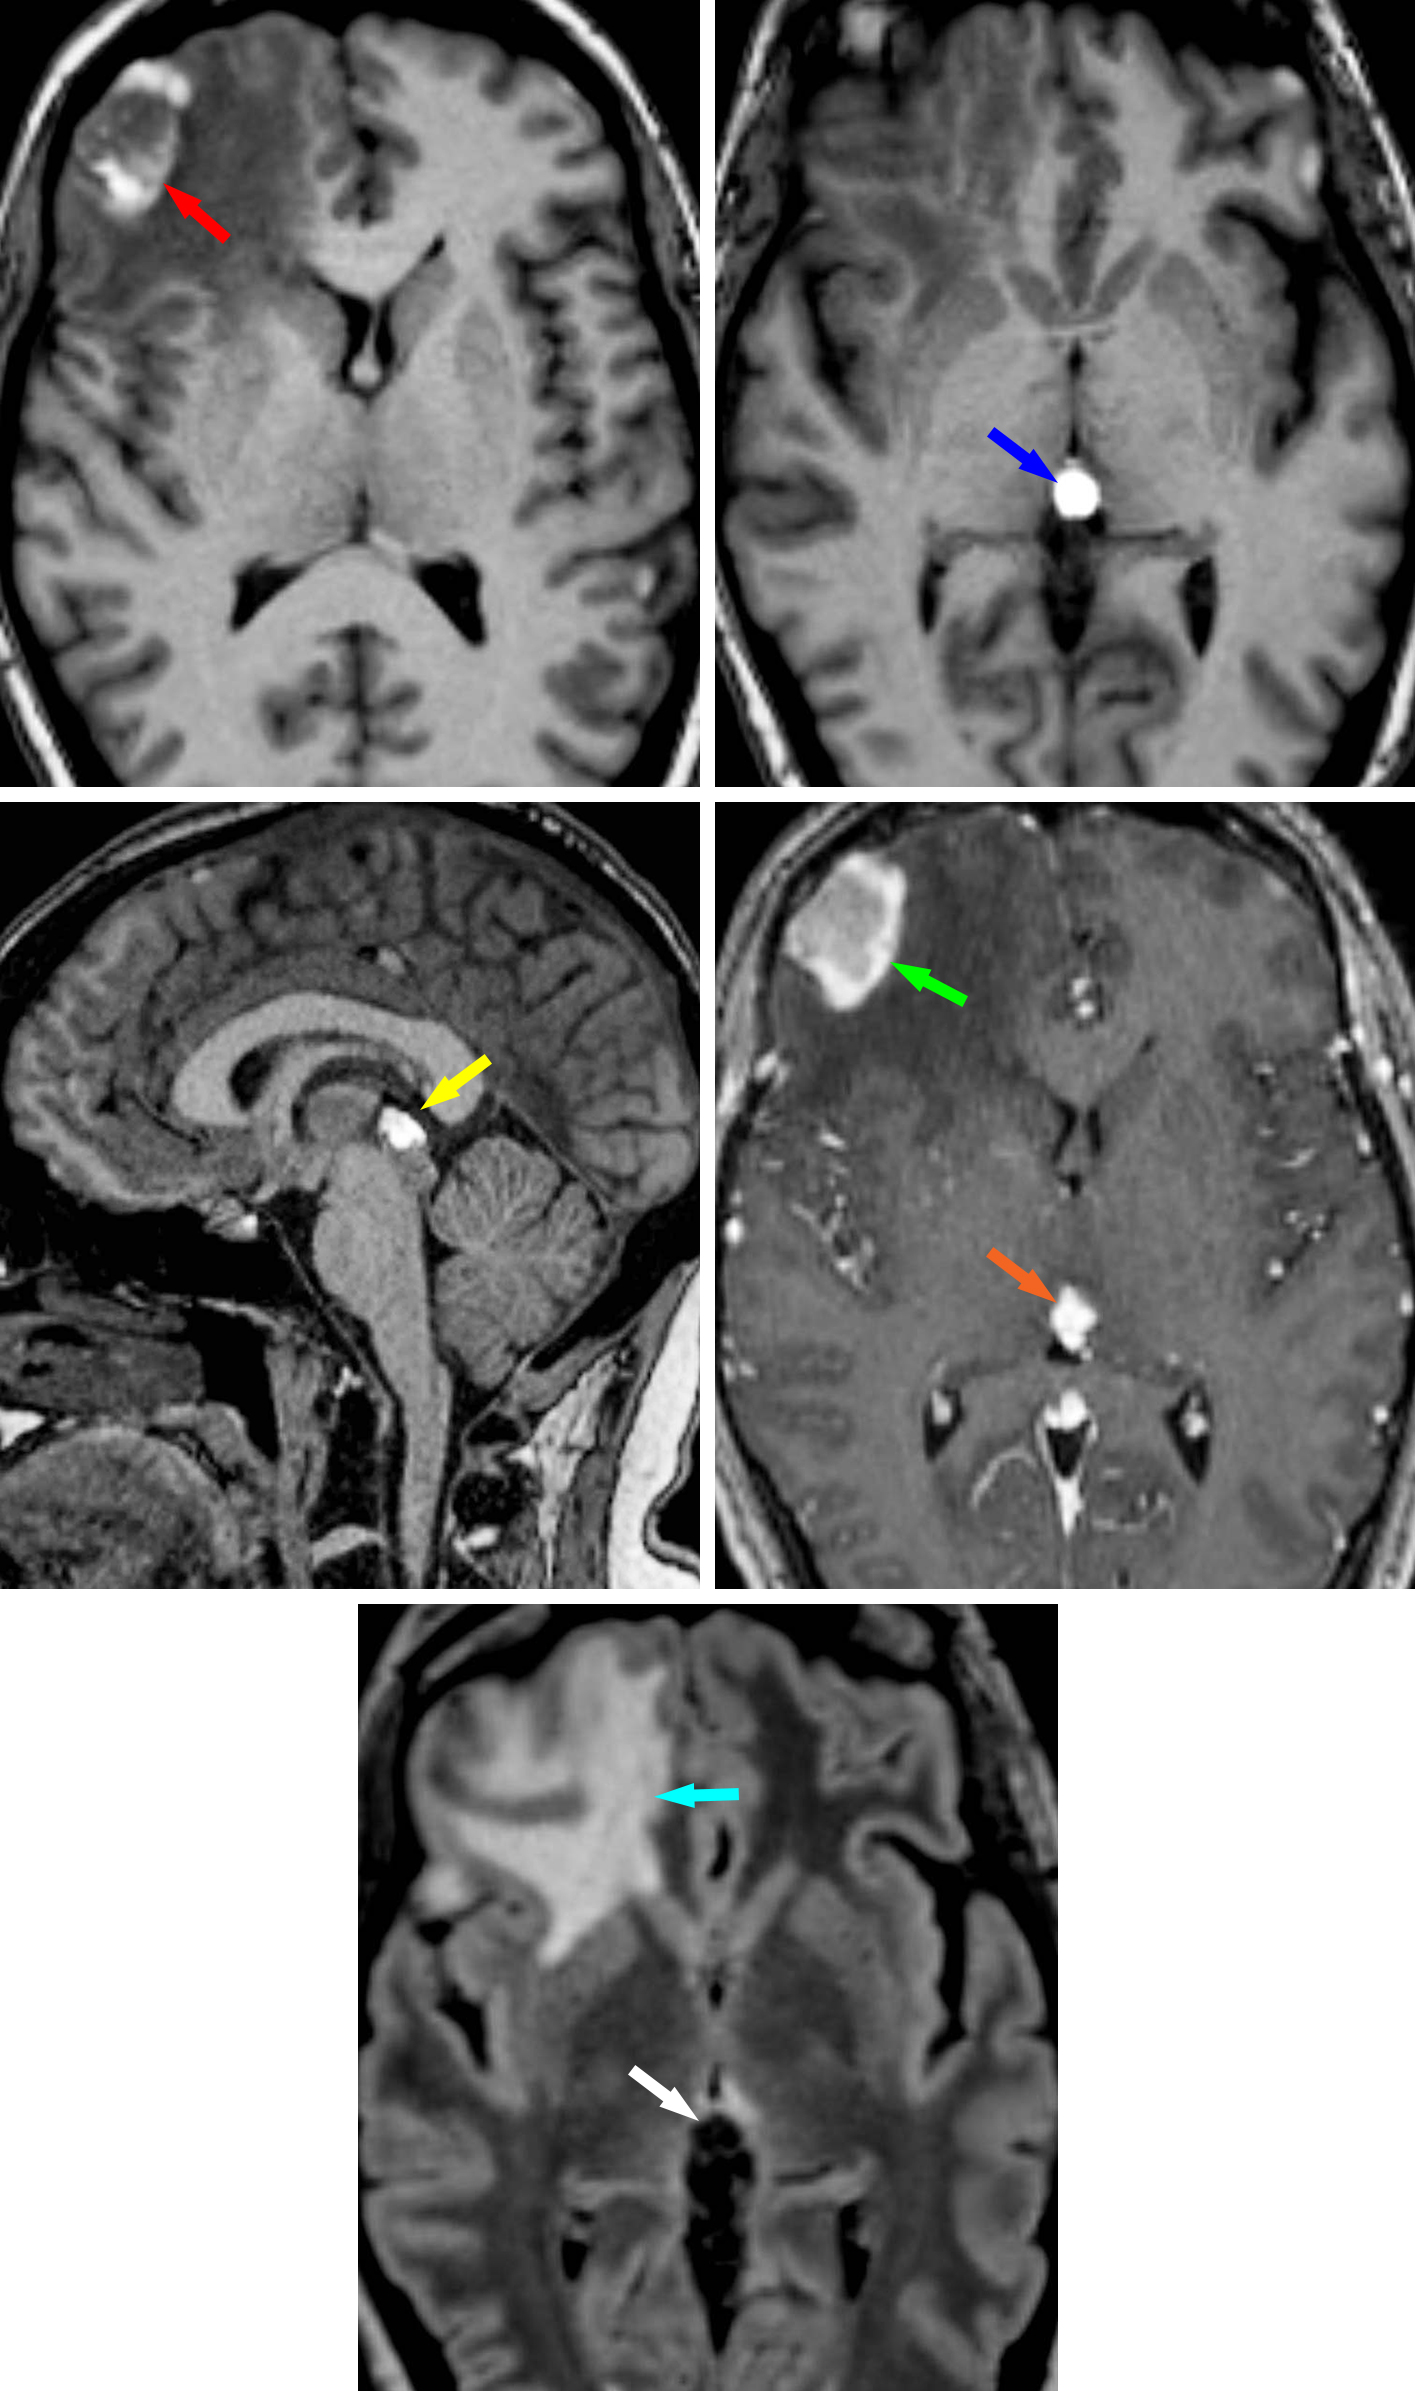 Figure 10: Pineal metastasis. In this patient with a history of melanoma presenting with headache, there is evidence of right frontal parenchymal and pineal metastases. Noncontrast T1-weighted axial images demonstrate the hyperintense right frontal metastasis (top left, red arrow) and the hyperintense pineal metastasis (top right, blue arrow). (Middle Left) The pineal metastasis is also visible on a sagittal T1-weighted image (yellow arrow). The high T1-weighted signal is a common feature of melanoma metastases. (Middle Right) An axial T1-weighted postcontrast image demonstrates these right frontal parenchymal (green) and pineal (orange) lesions as having additional hyperintense enhancement. (Bottom) On an axial T2 FLAIR image, the pineal lesion demonstrates low signal (white arrow), while the right frontal parenchymal lesion demonstrates characteristic associated subcortical vasogenic edema (teal arrow).